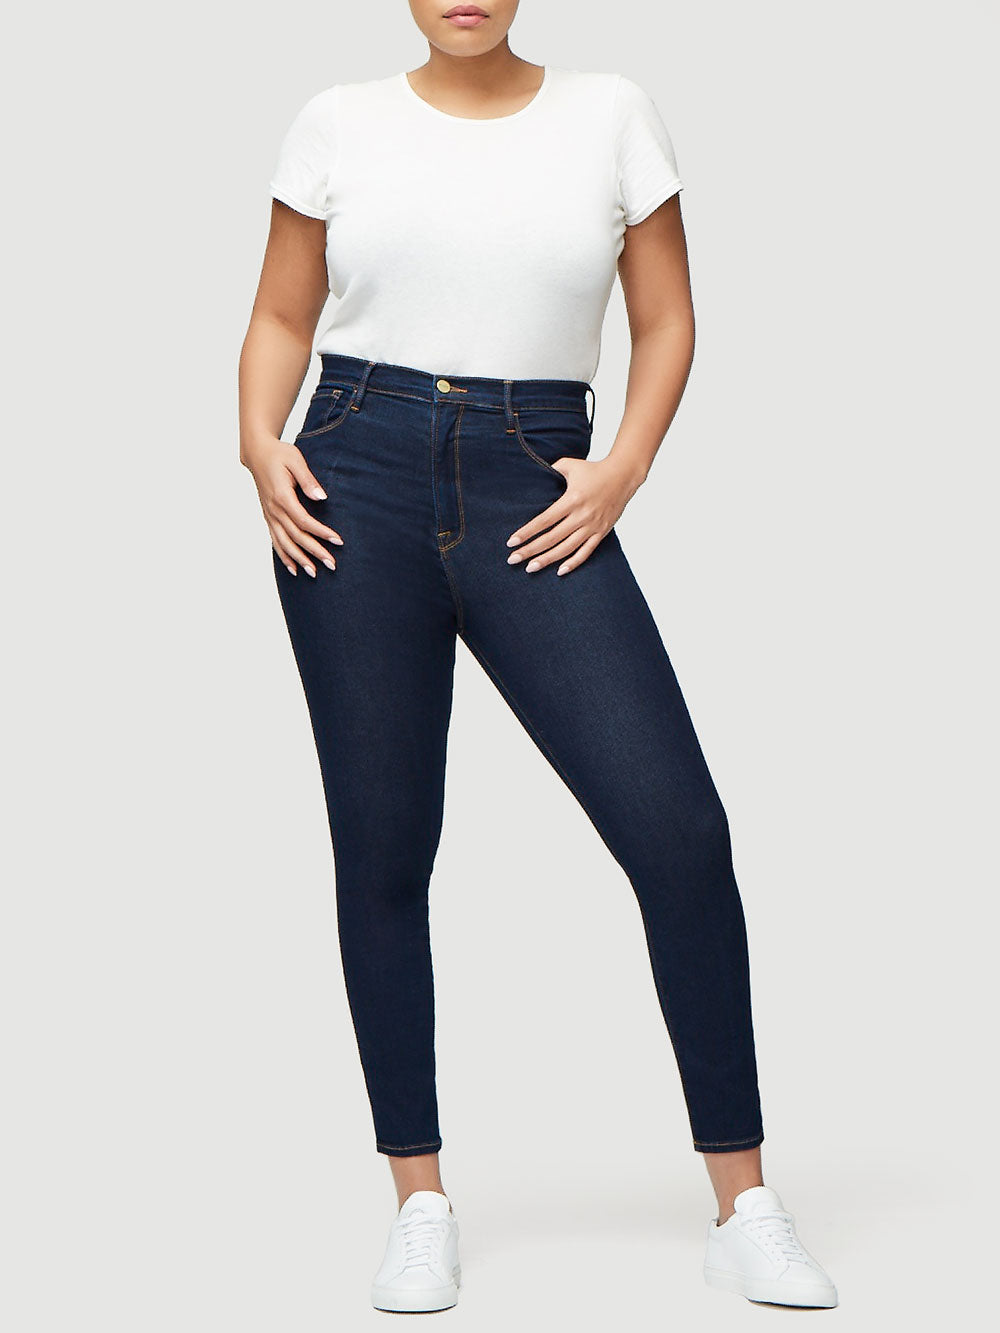 jeans front full body view alt:amber